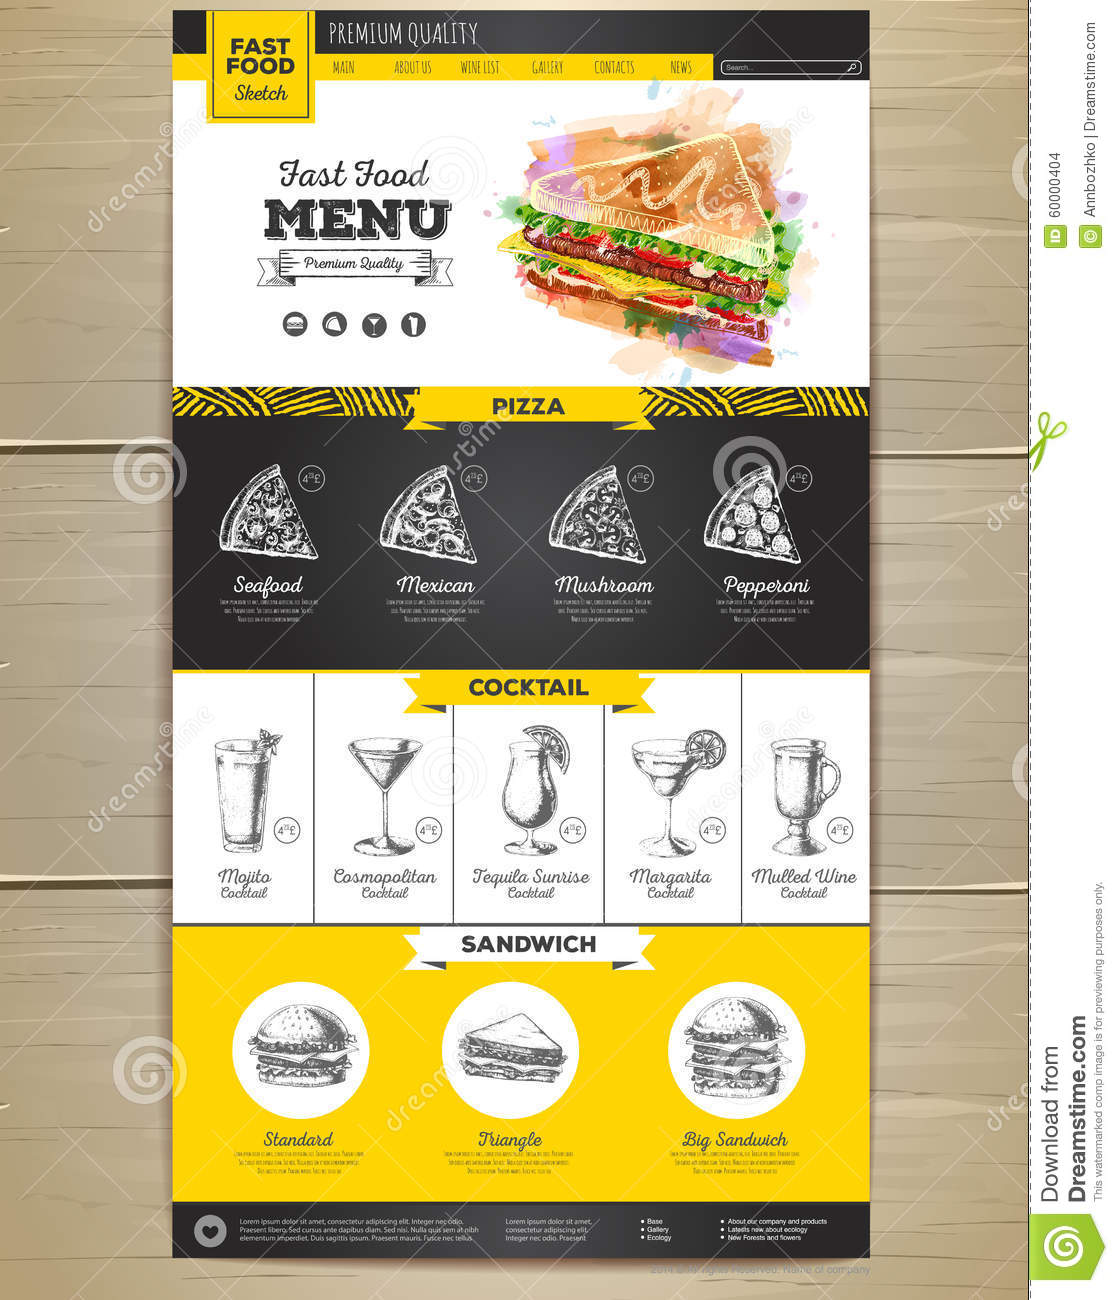 Fast Food Menu Concept Web Site Design. Stock Vector - Illustration of  mexican, drawing: 60000404